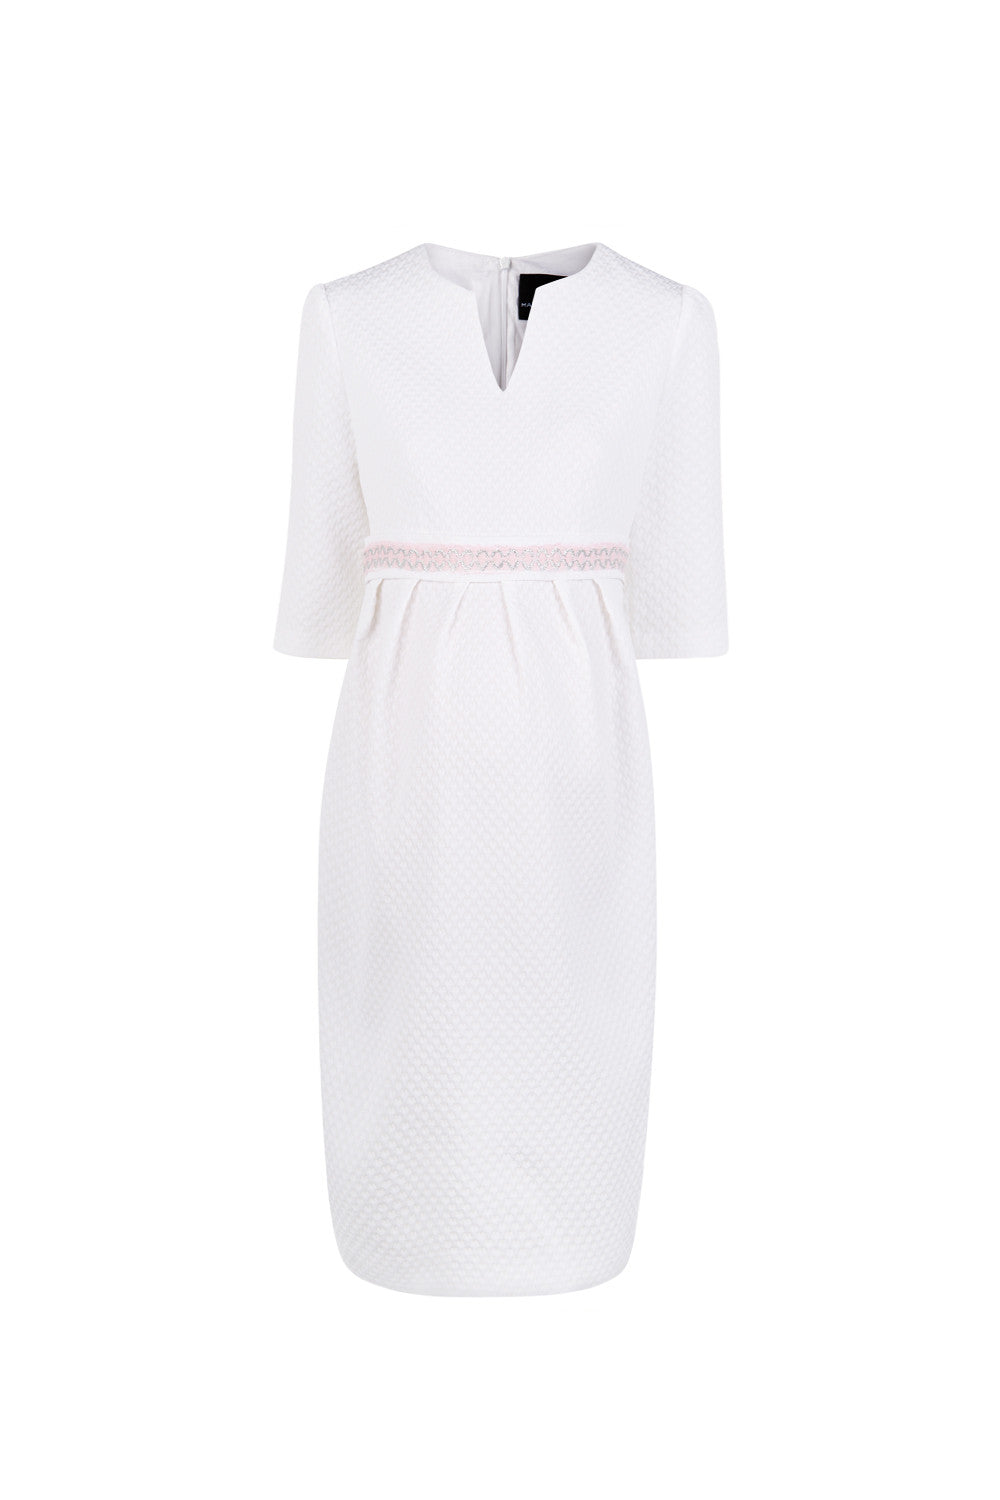 Nadine Dress - White/Pink - Maternity Outlet - Madderson London